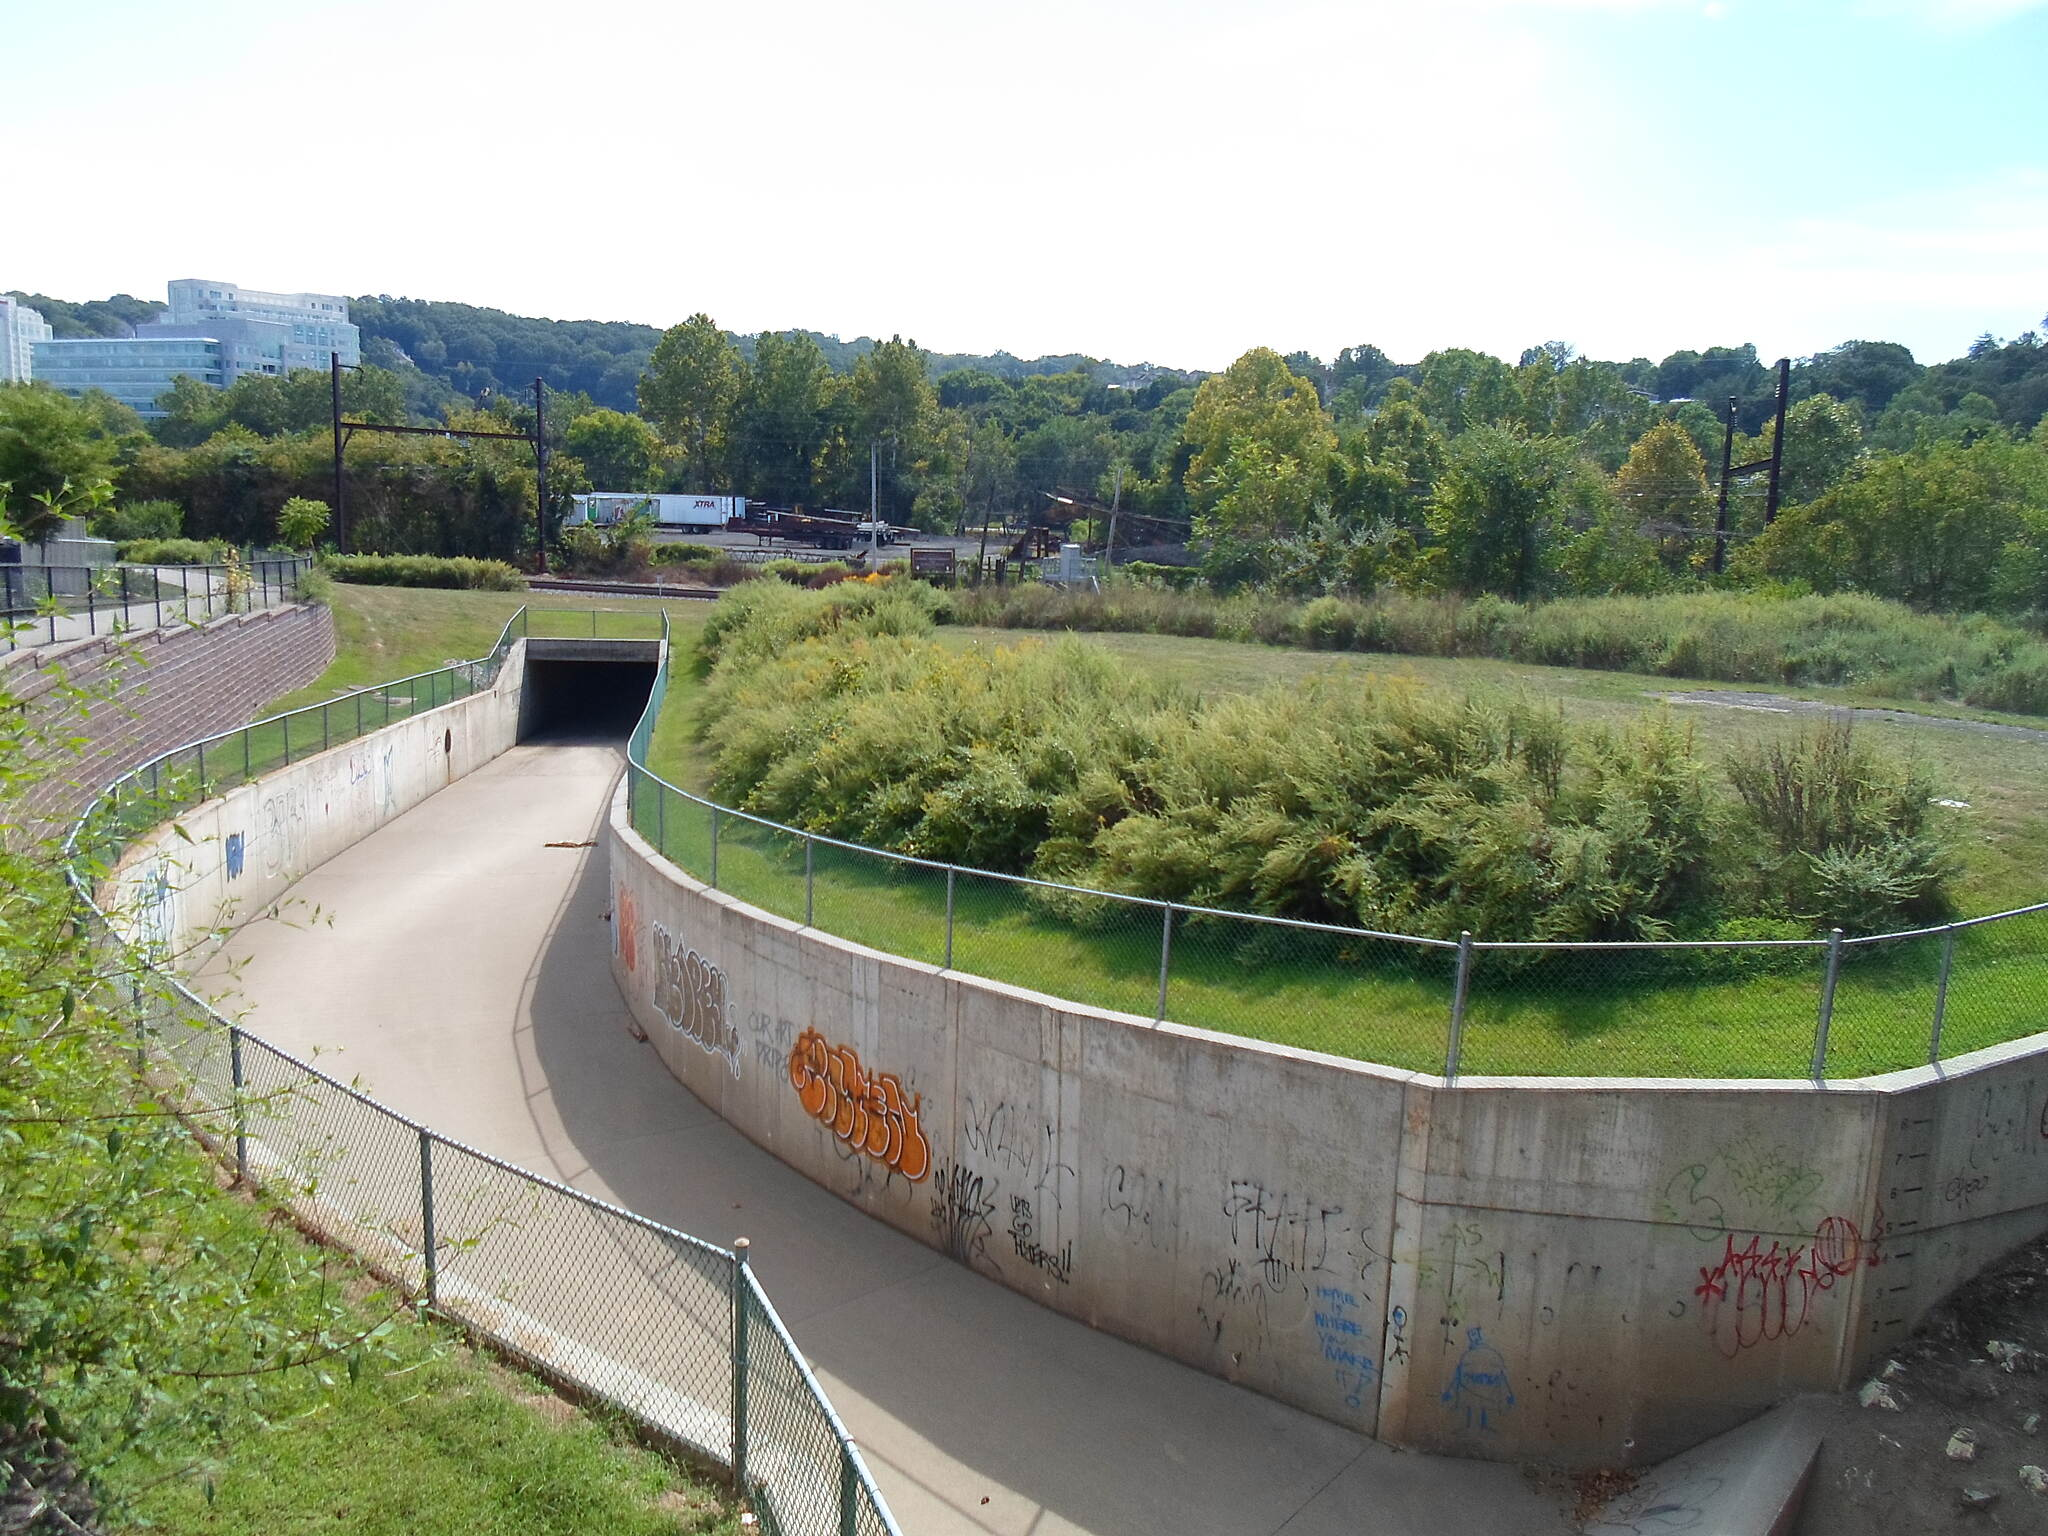 Schuylkill River Trail Schuylkill River Trail It may look like a skate park, but this concrete landmark in Conshohocken is actually a mini version of the Los Angeles River; a flood control basin designed to contain overflow water from the nearby Schuylkill. Taken Sept. 2014.